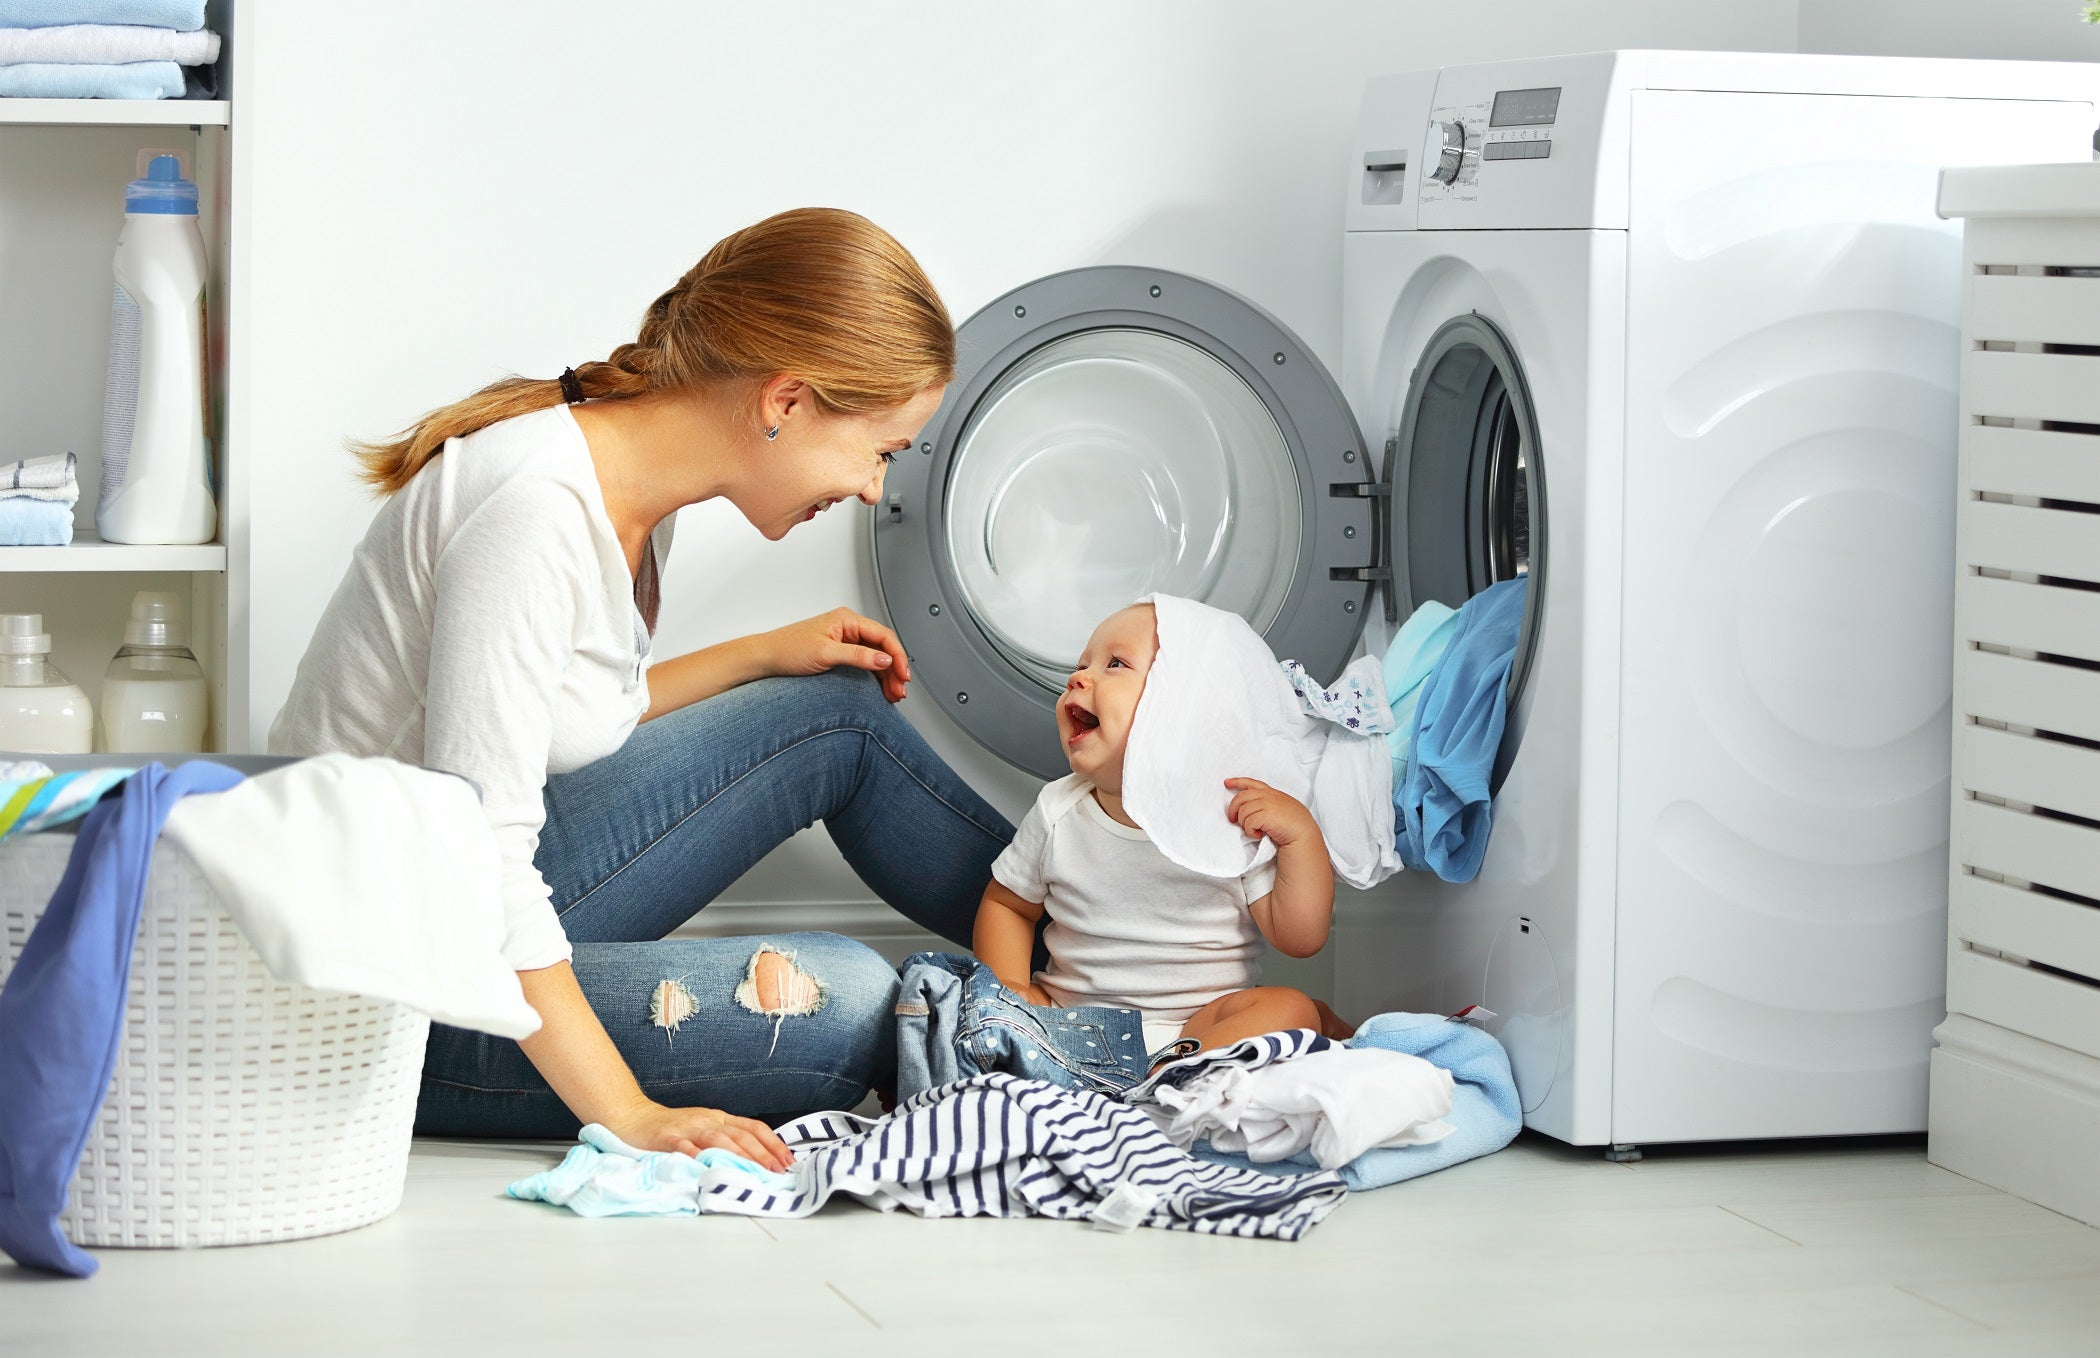 A Complete Guide To Washing Baby Clothes